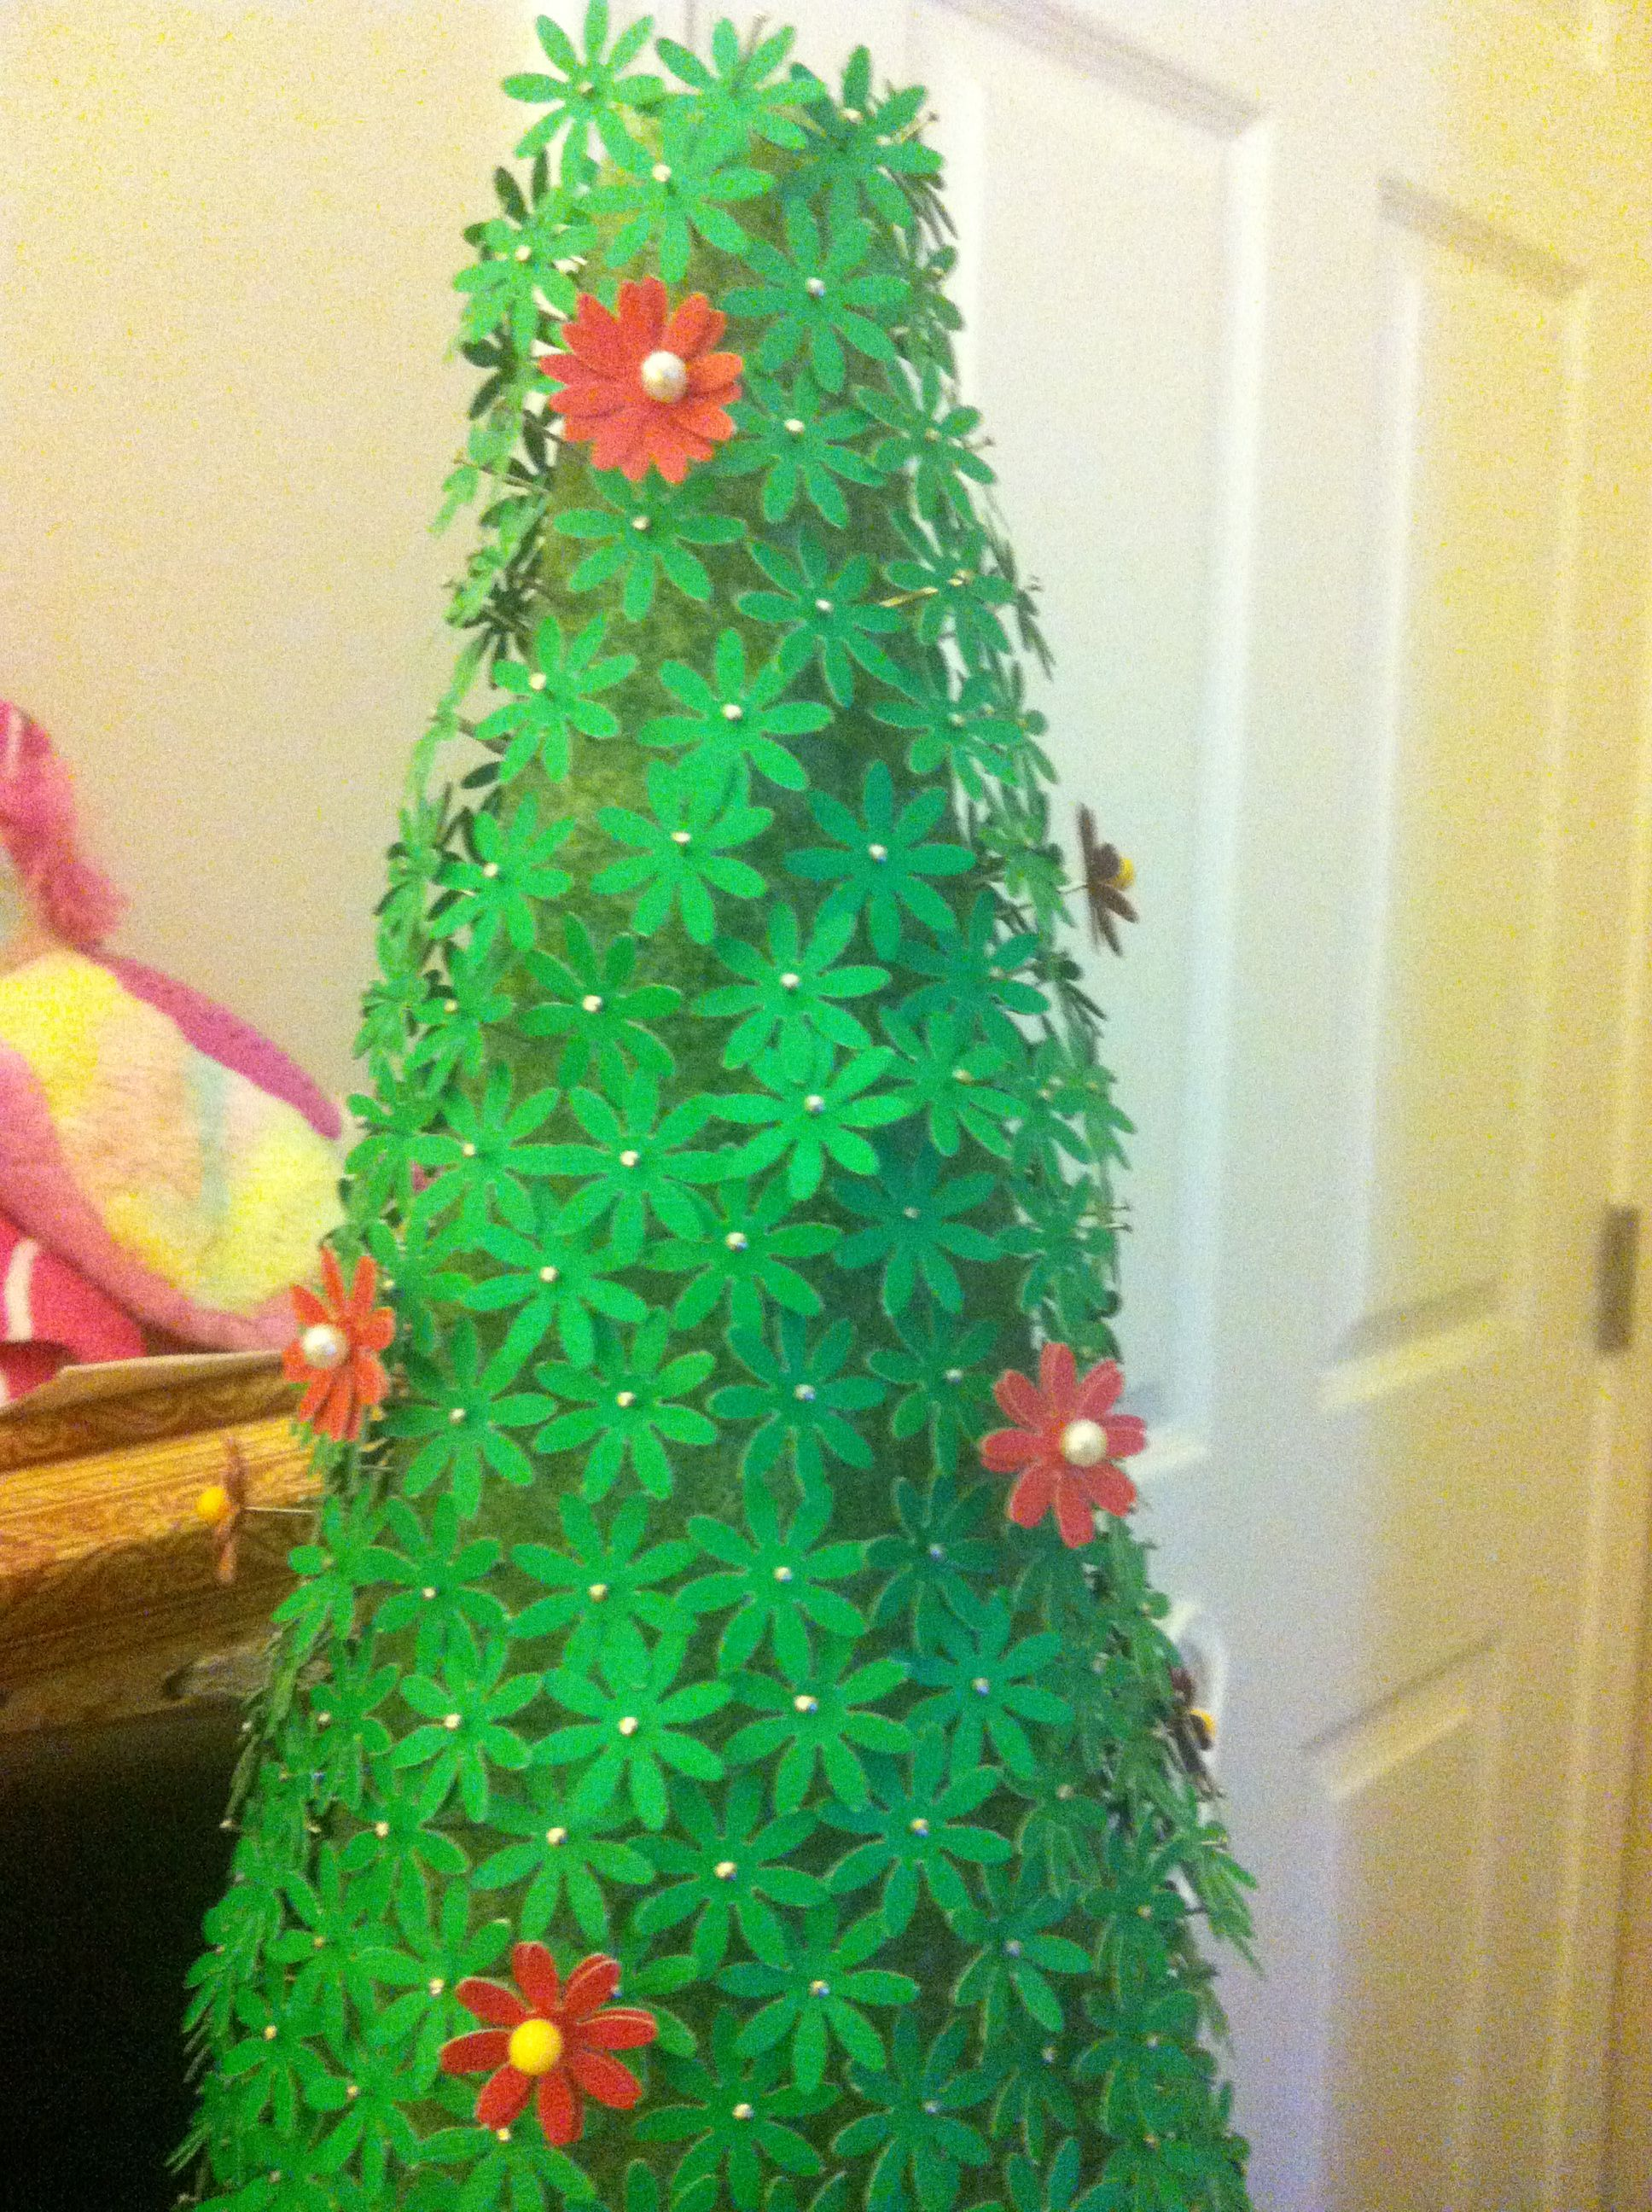 My Christmas Tree Made Out Green Card Stock, Pins And